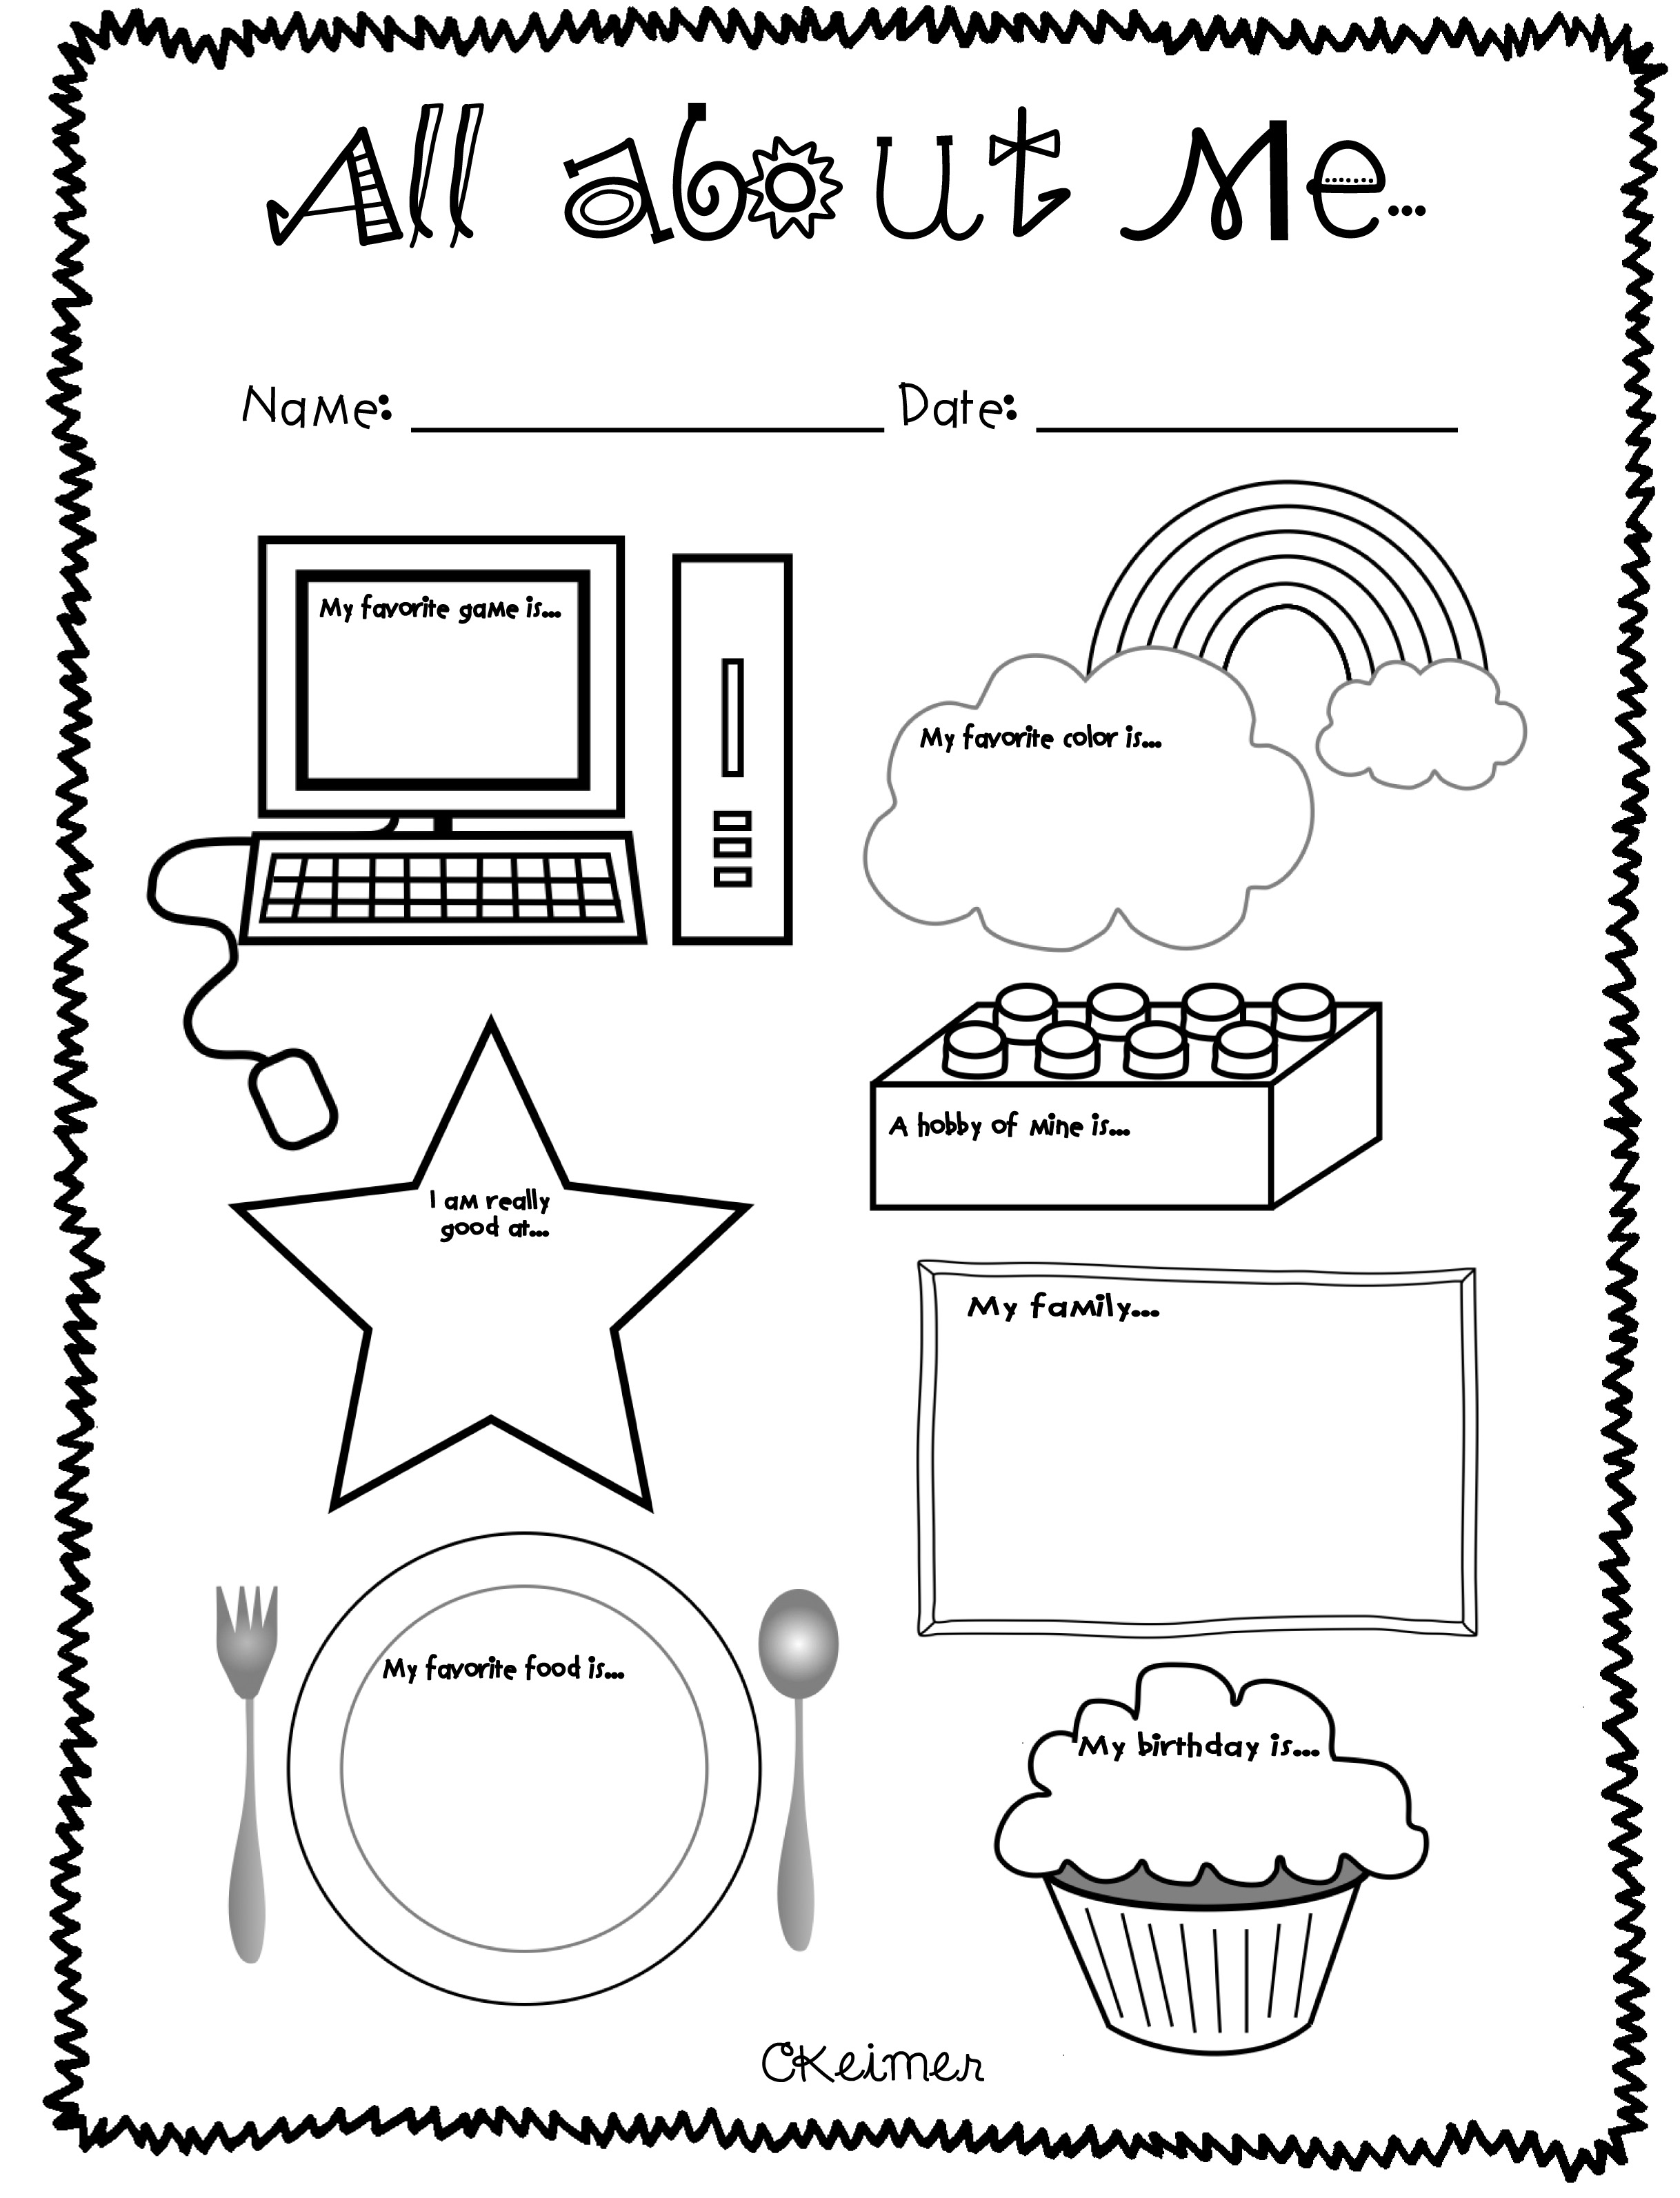 Worksheets All About Me Printable Worksheet all about me preschool worksheets virallyapp printables 6 best images of getting to know printable preschool